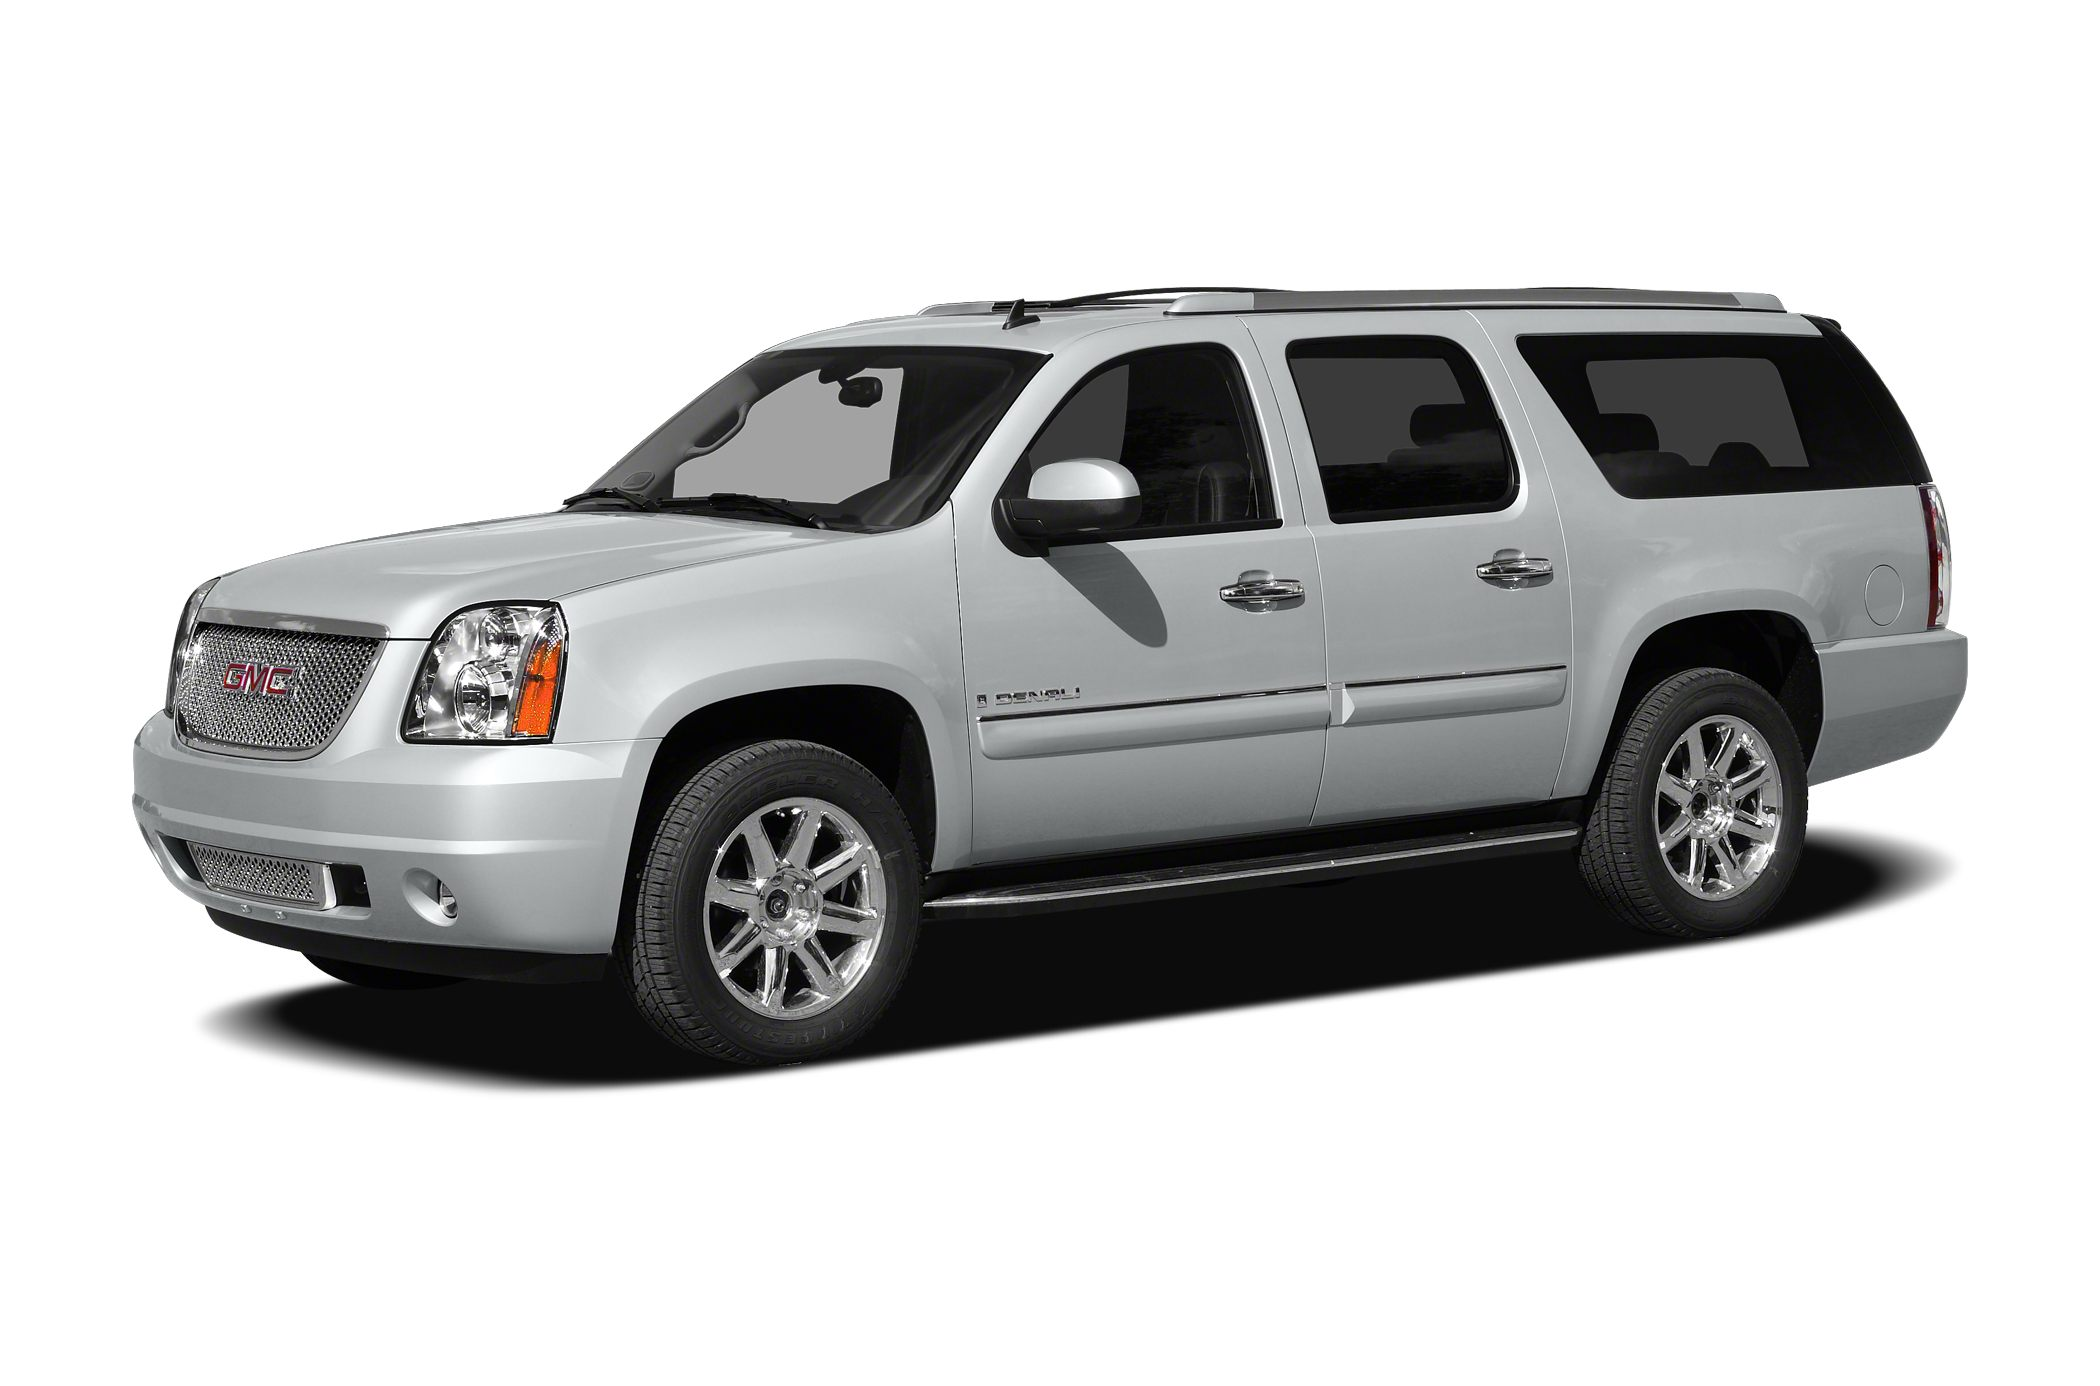 2011 GMC Yukon XL Denali SUV for sale in Bedford for $42,900 with 37,833 miles.